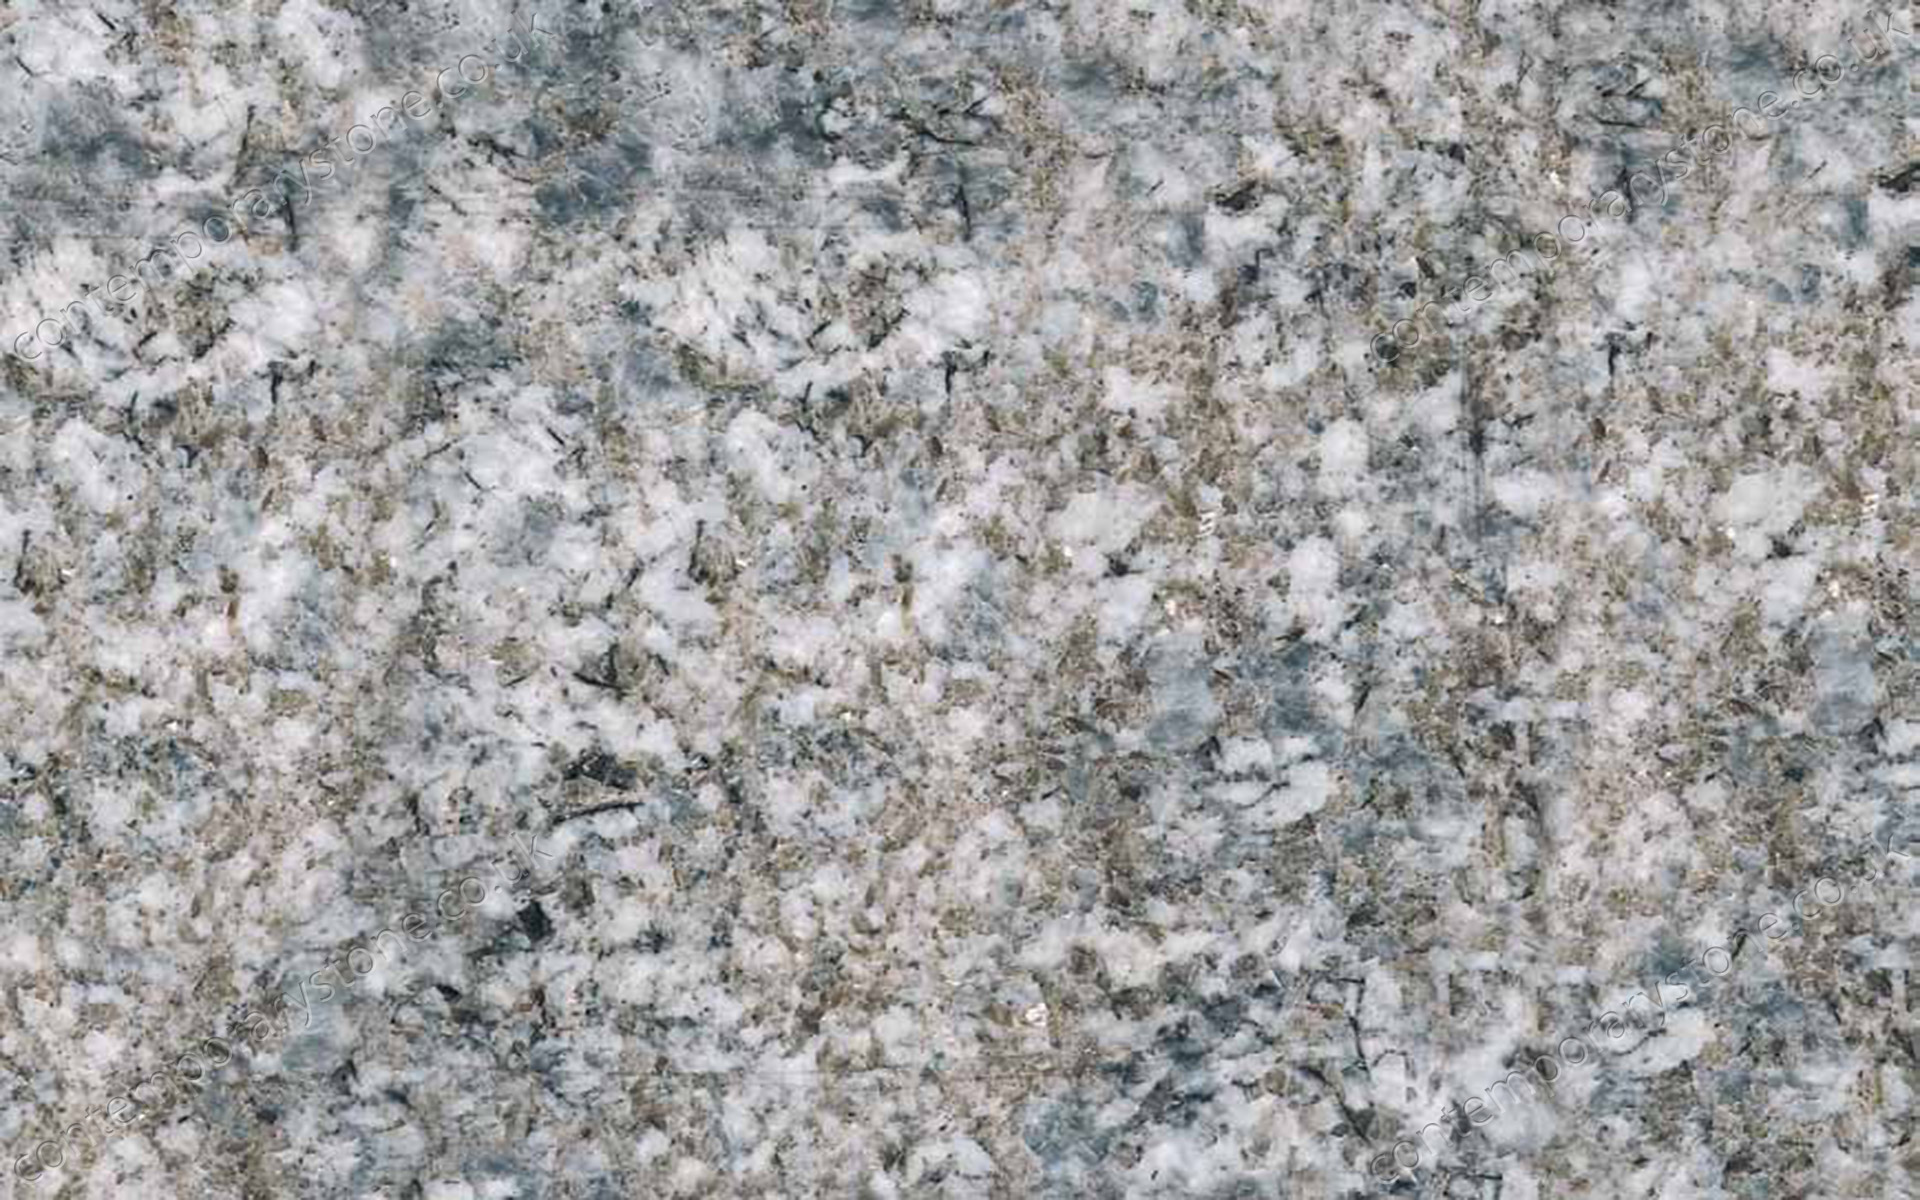 Azul Aran granite close-up